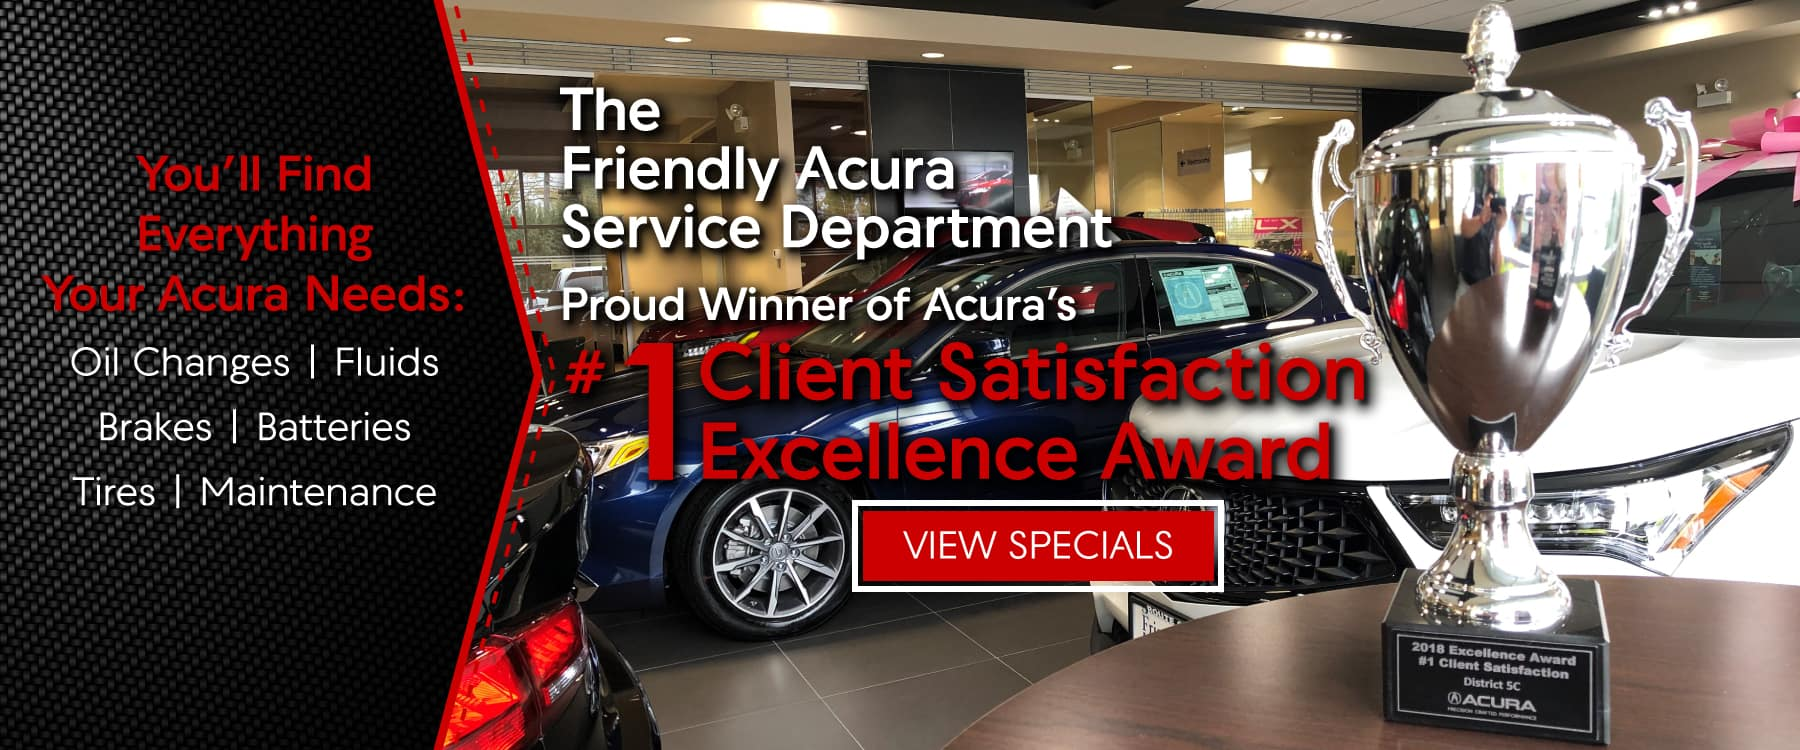 Friendly-Acura-Award-Winning-Service-RED